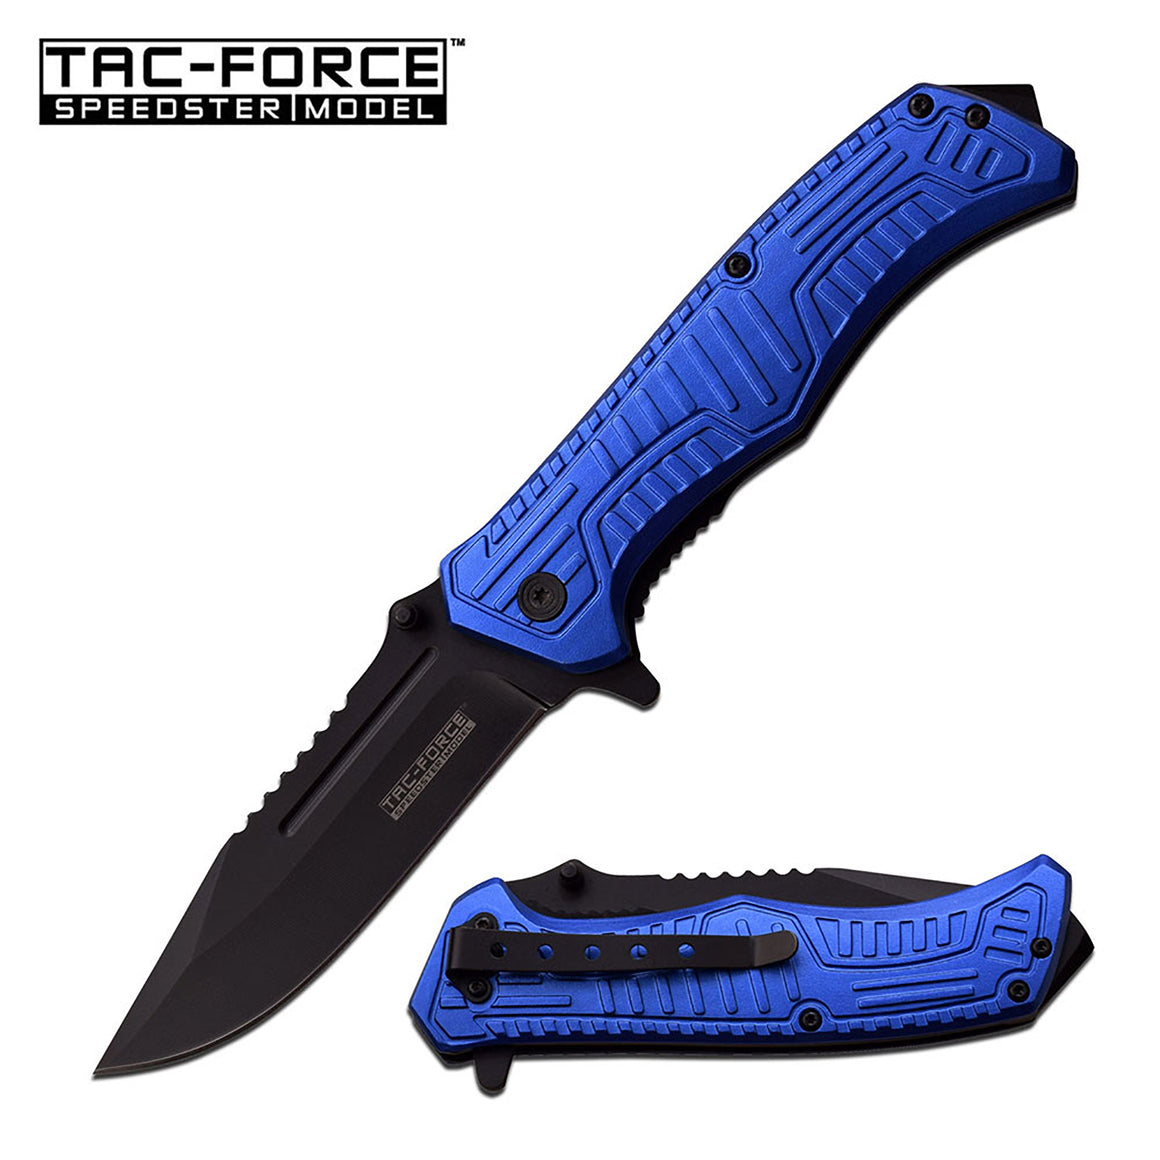 Tac-Force TF-918BL Spring Assisted Knife